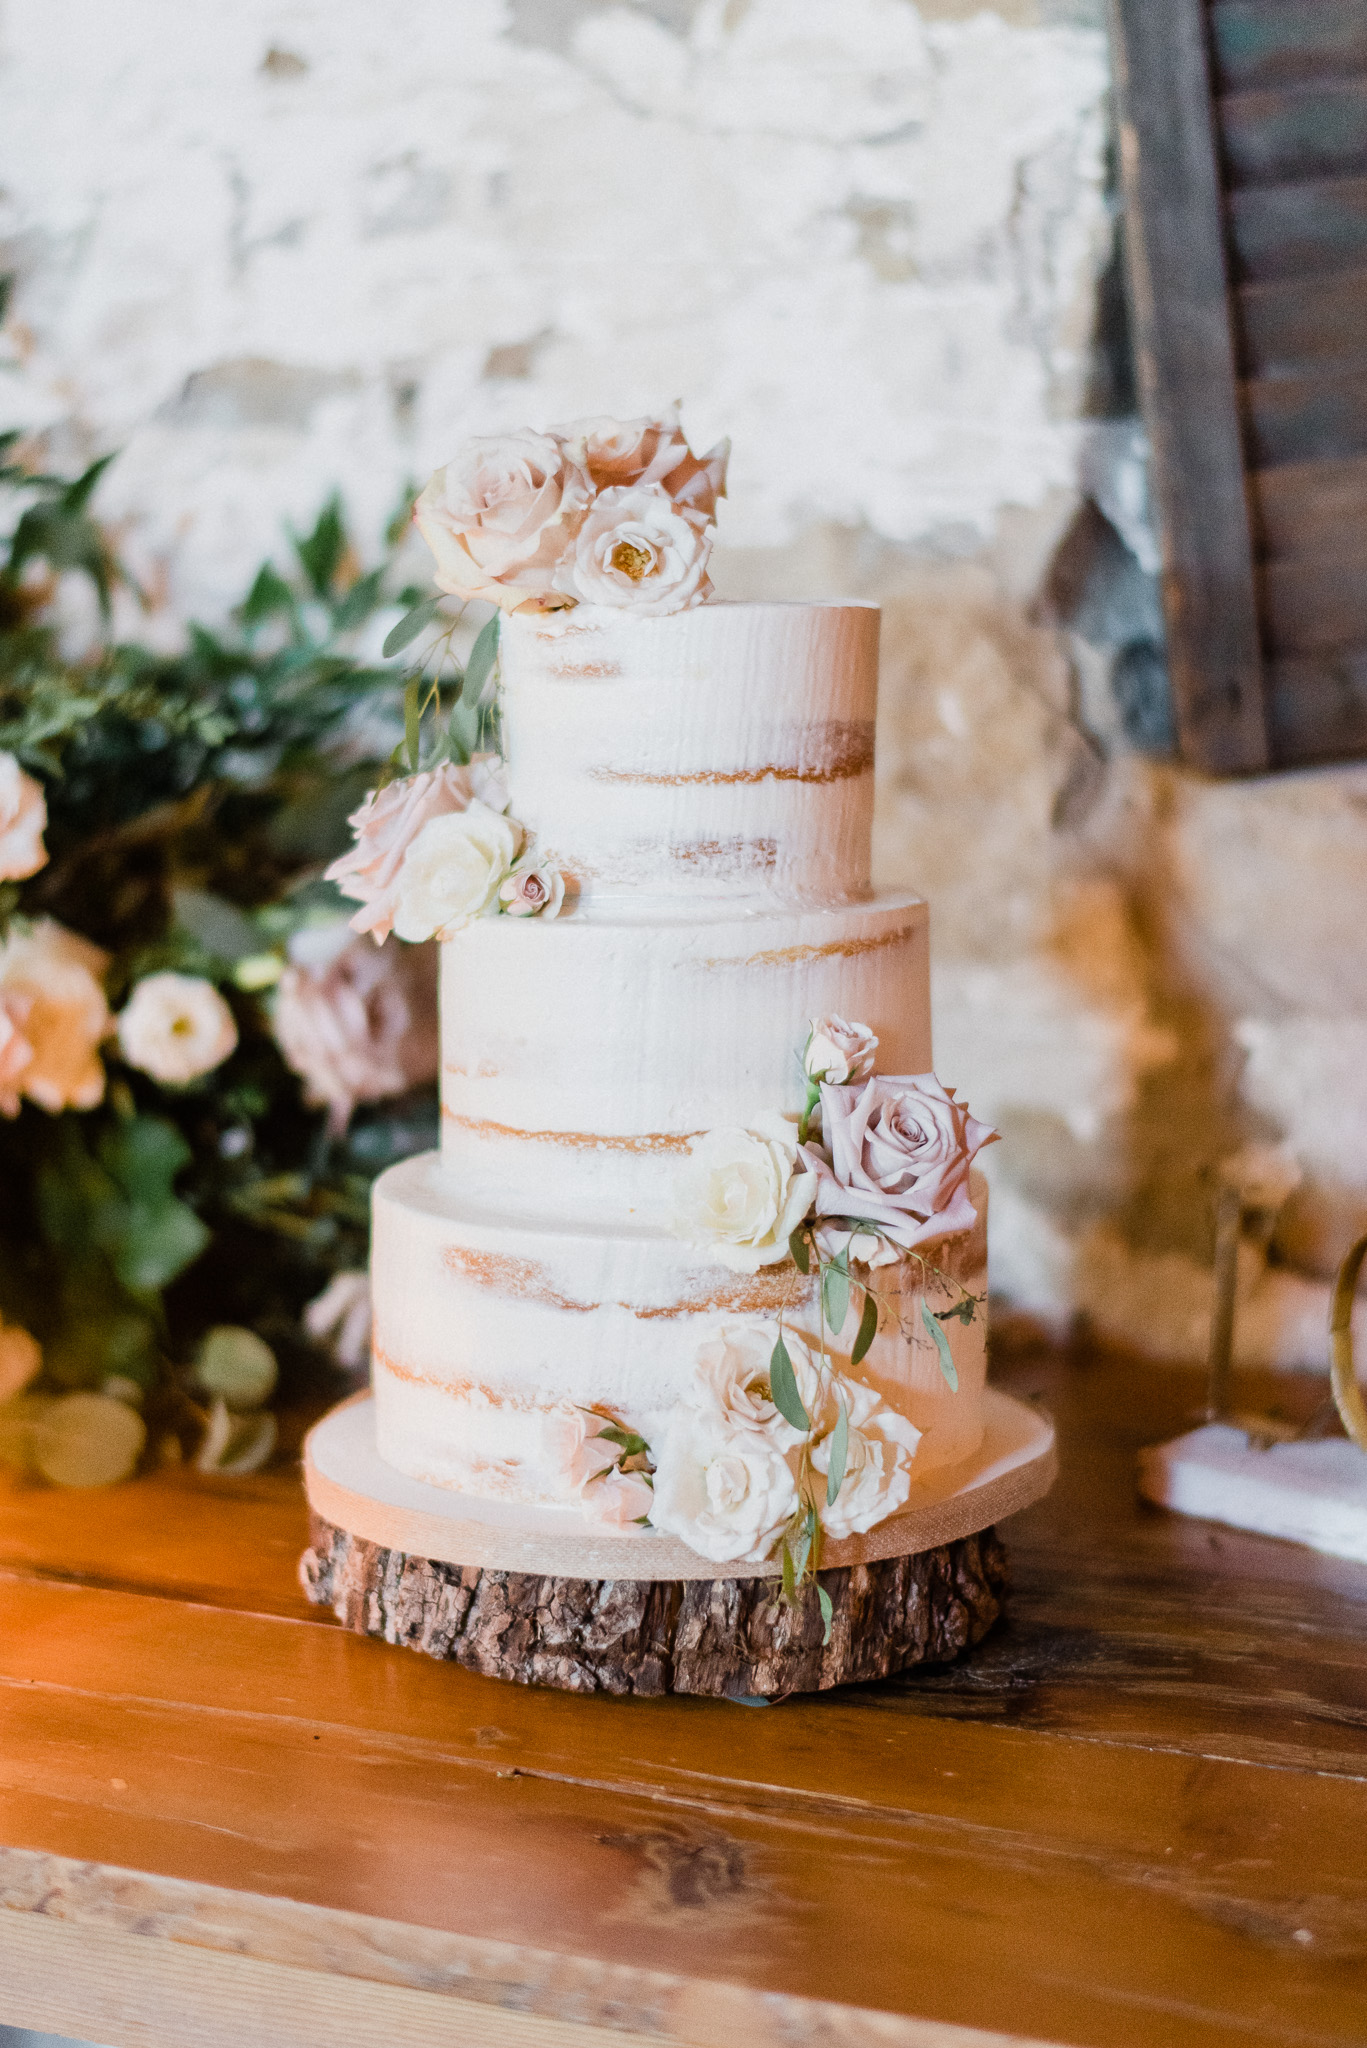 Sweet Celebrations cake | Honsberger Estate Winery Wedding by Jenn Kavanagh Photography